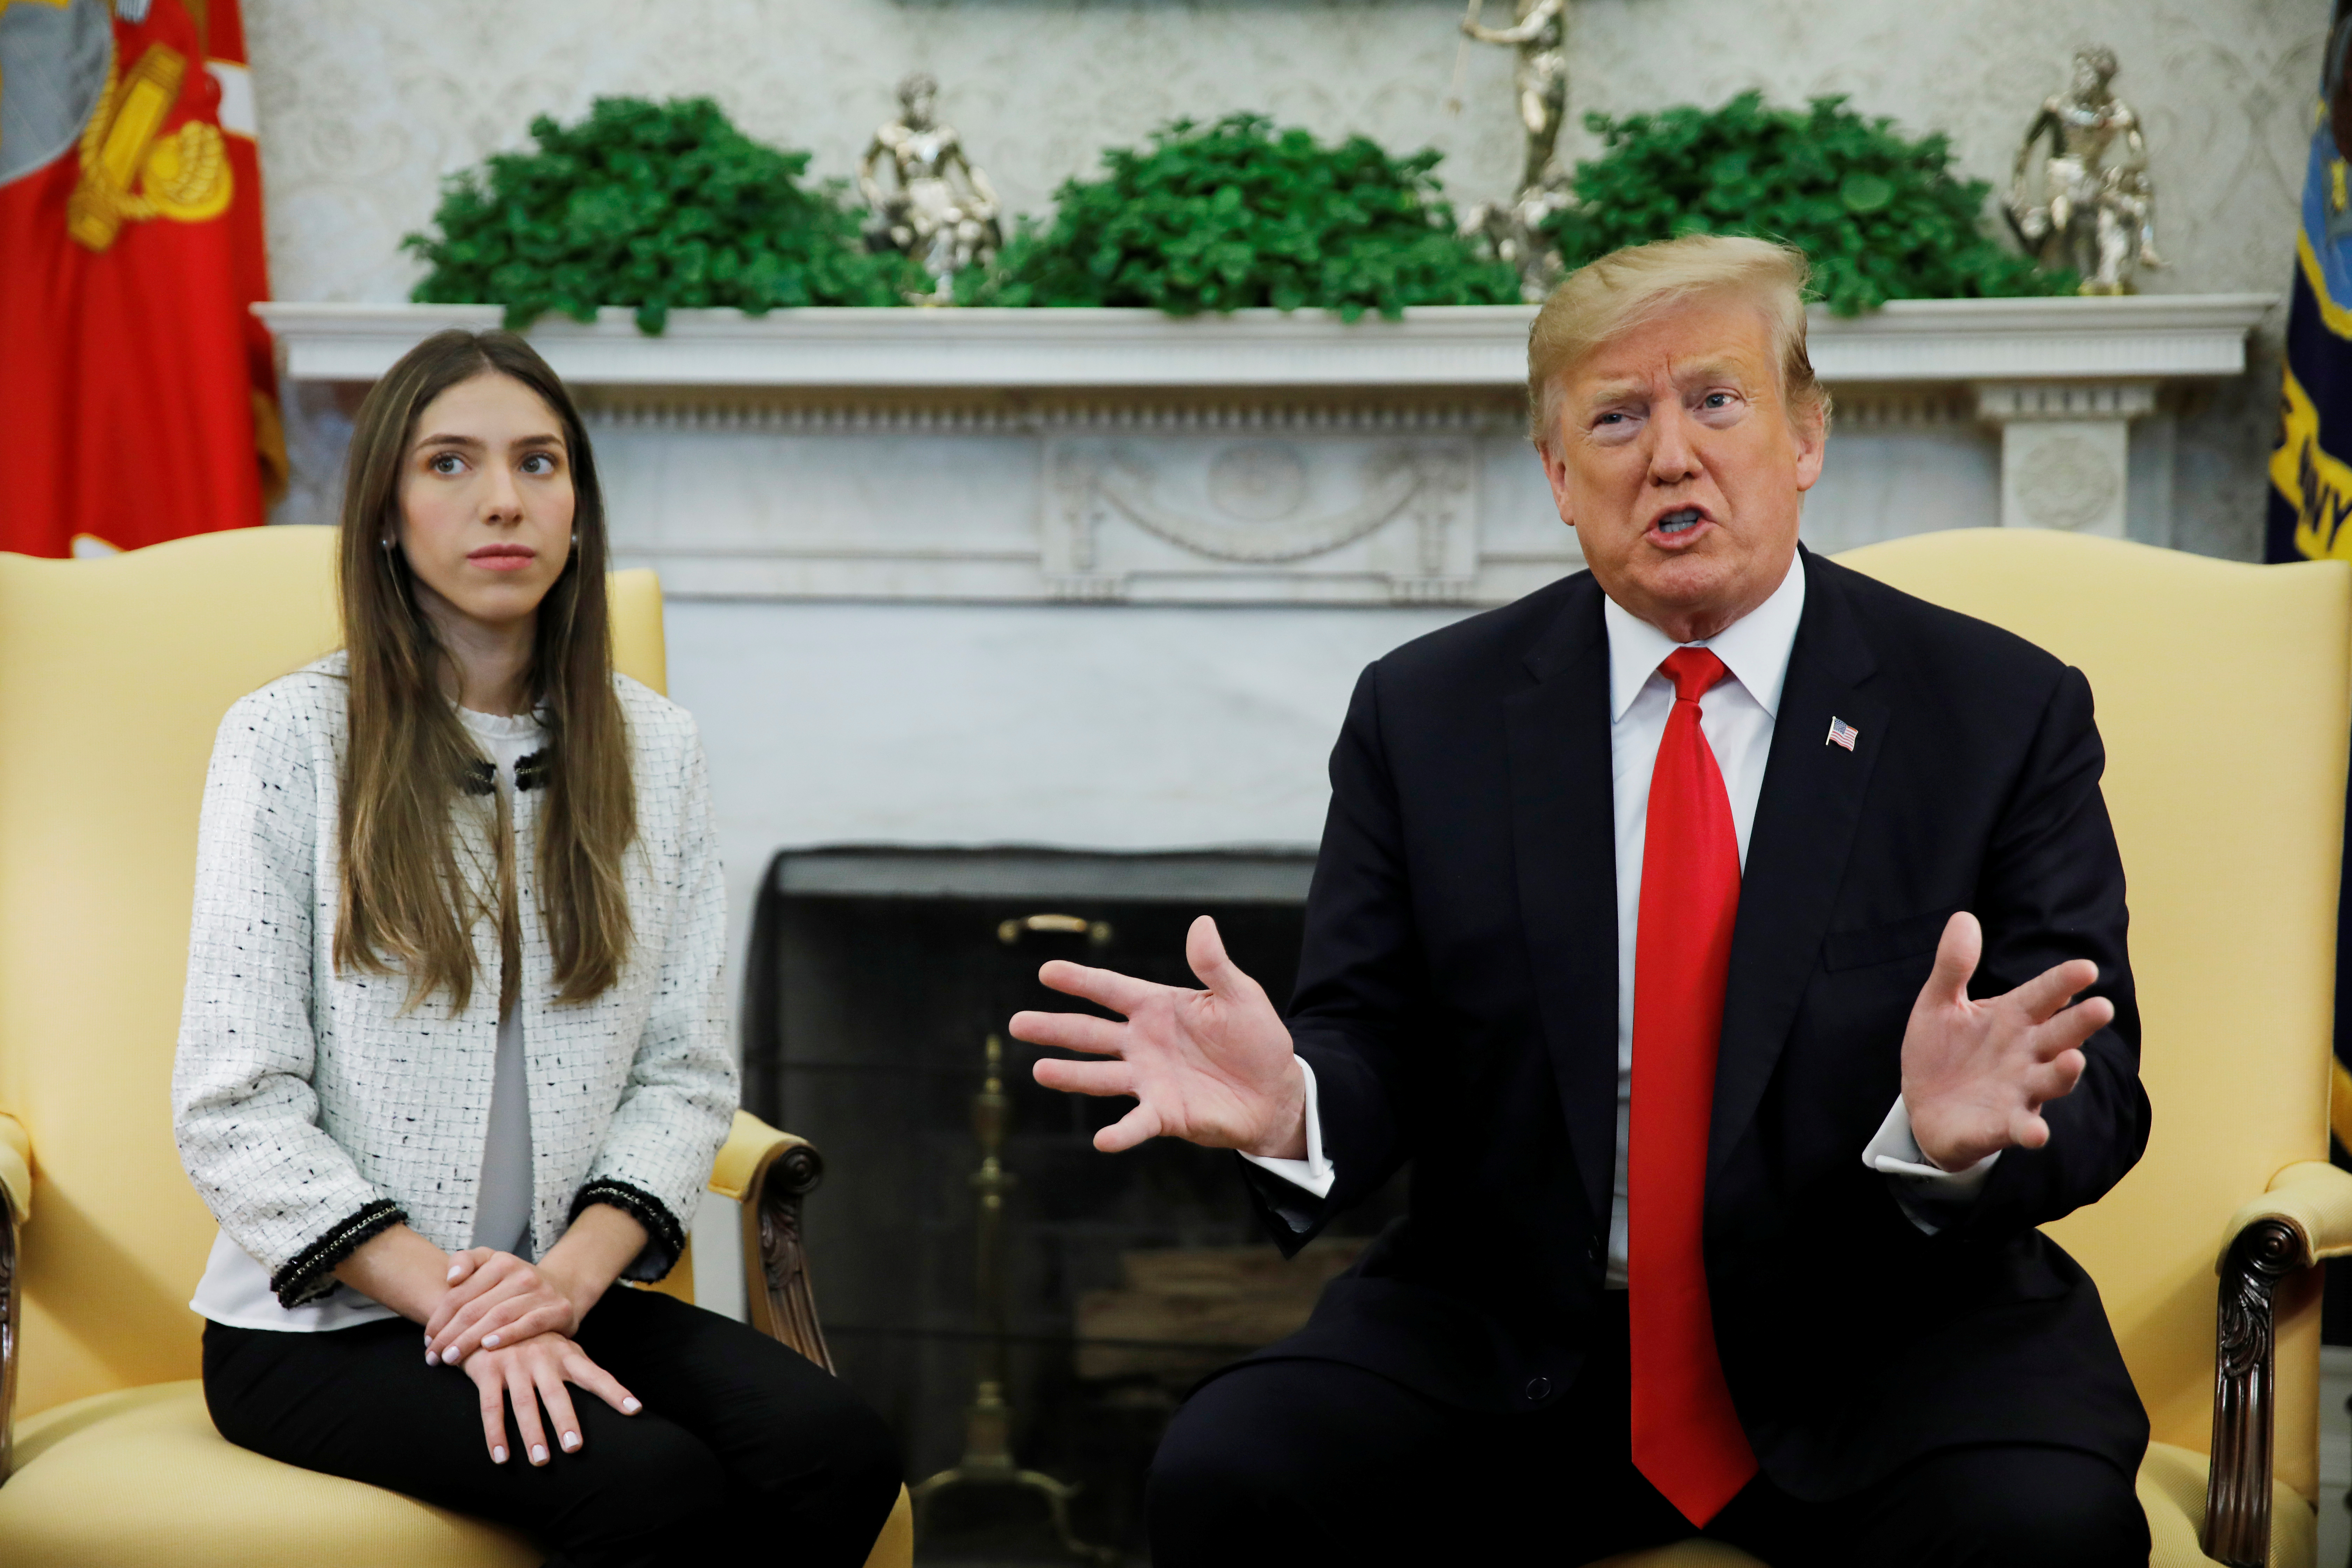 U.S. President Donald Trump meets with Fabiana Rosales, wife of Venezuelan opposition leader Juan Guaido, in the Oval Office at the White House in Washington, U.S., March 27, 2019. REUTERS/Carlos Barria